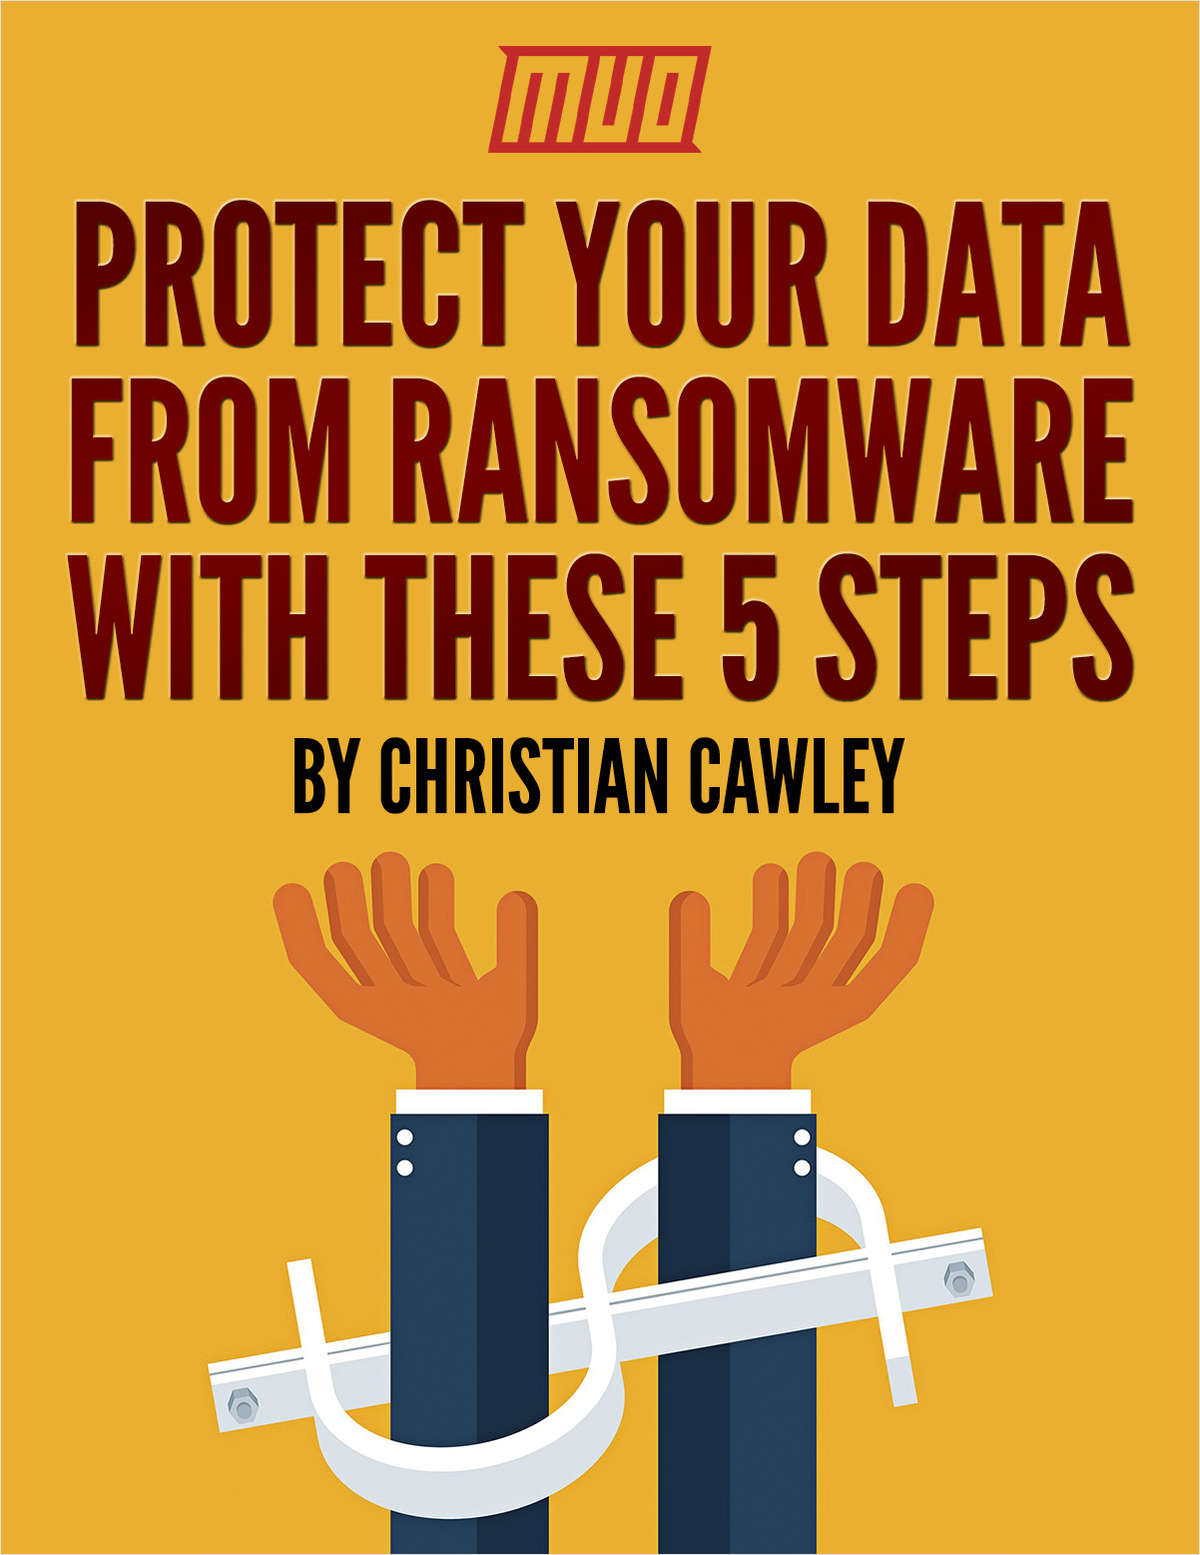 Protect Your Data From Ransomware With These 5 Steps